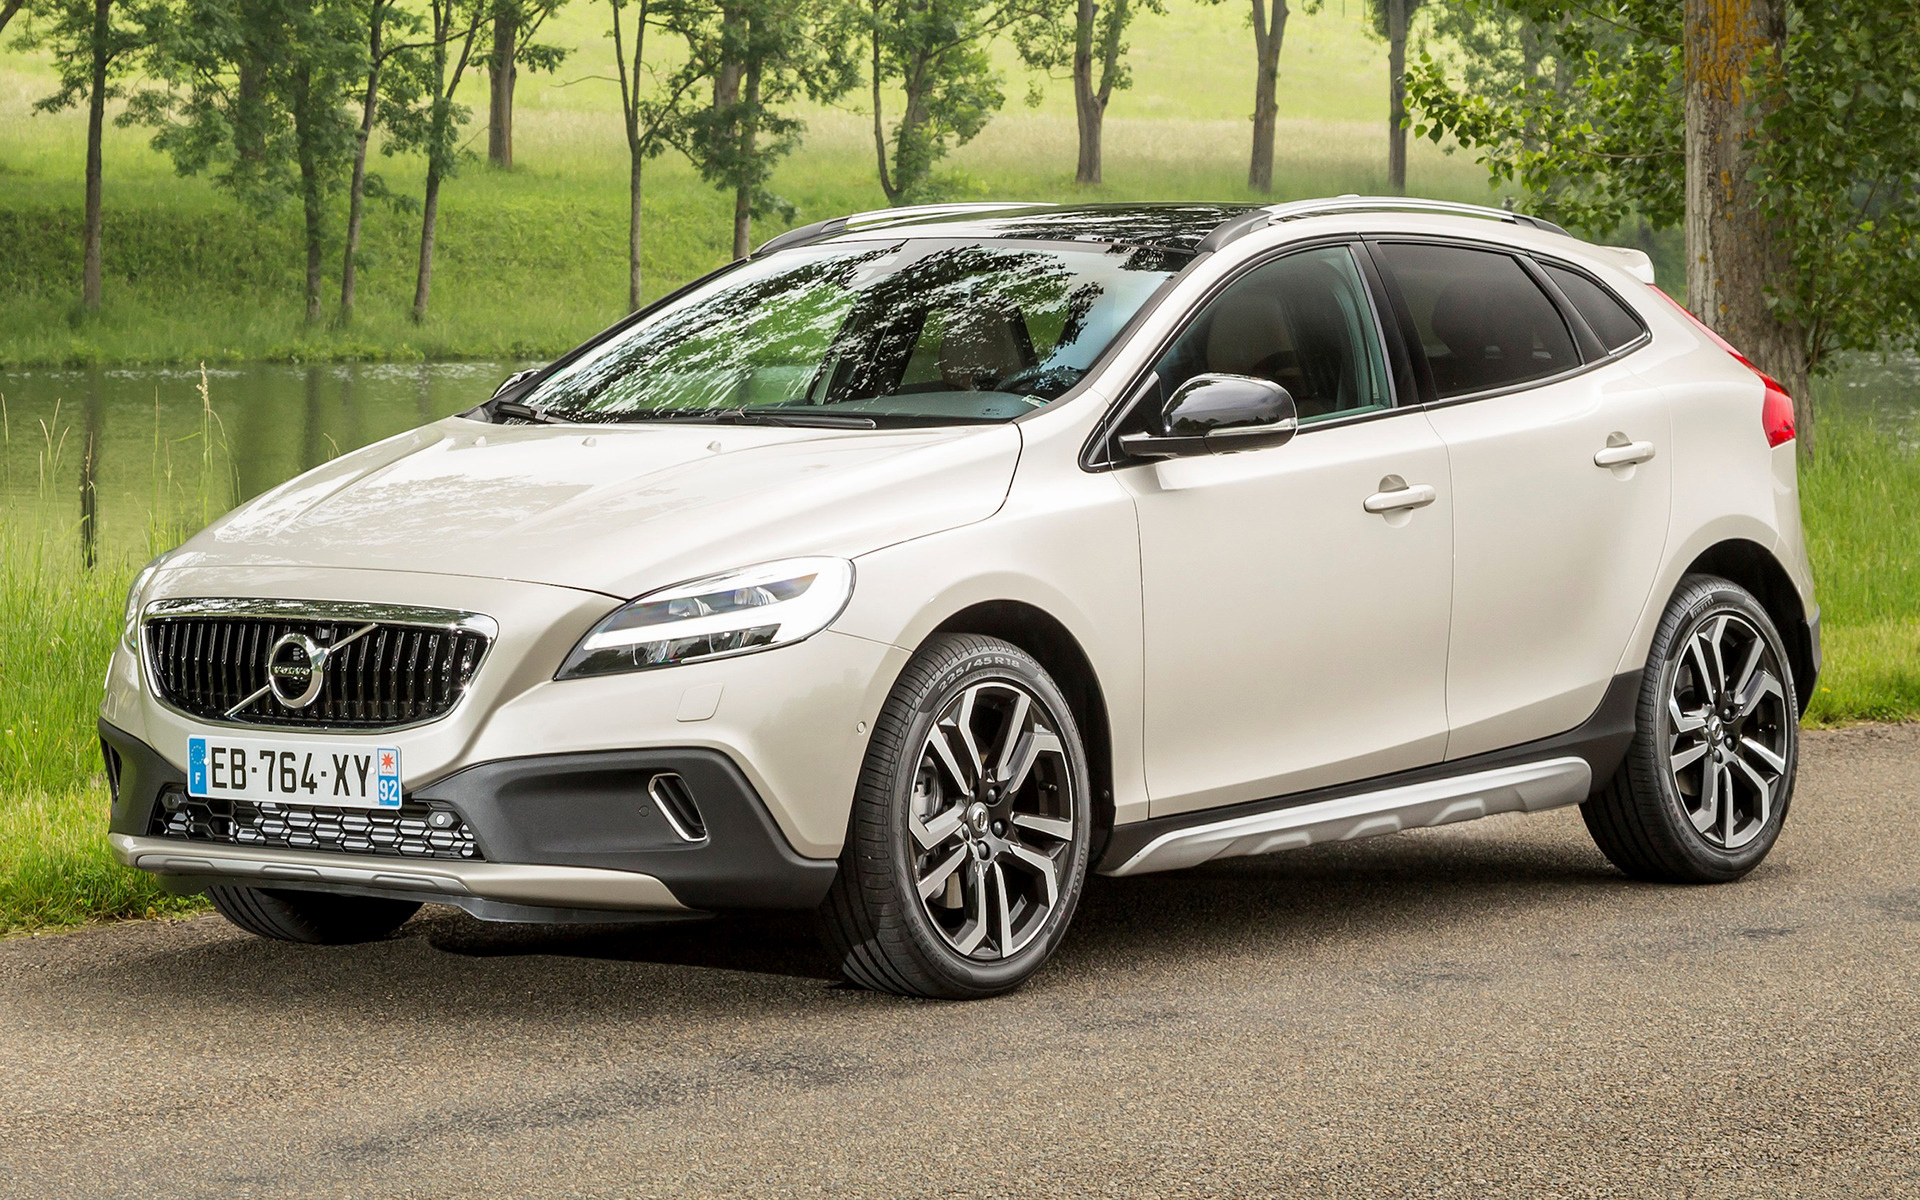 volvo v40 cross country 2016 wallpapers and hd images. Black Bedroom Furniture Sets. Home Design Ideas